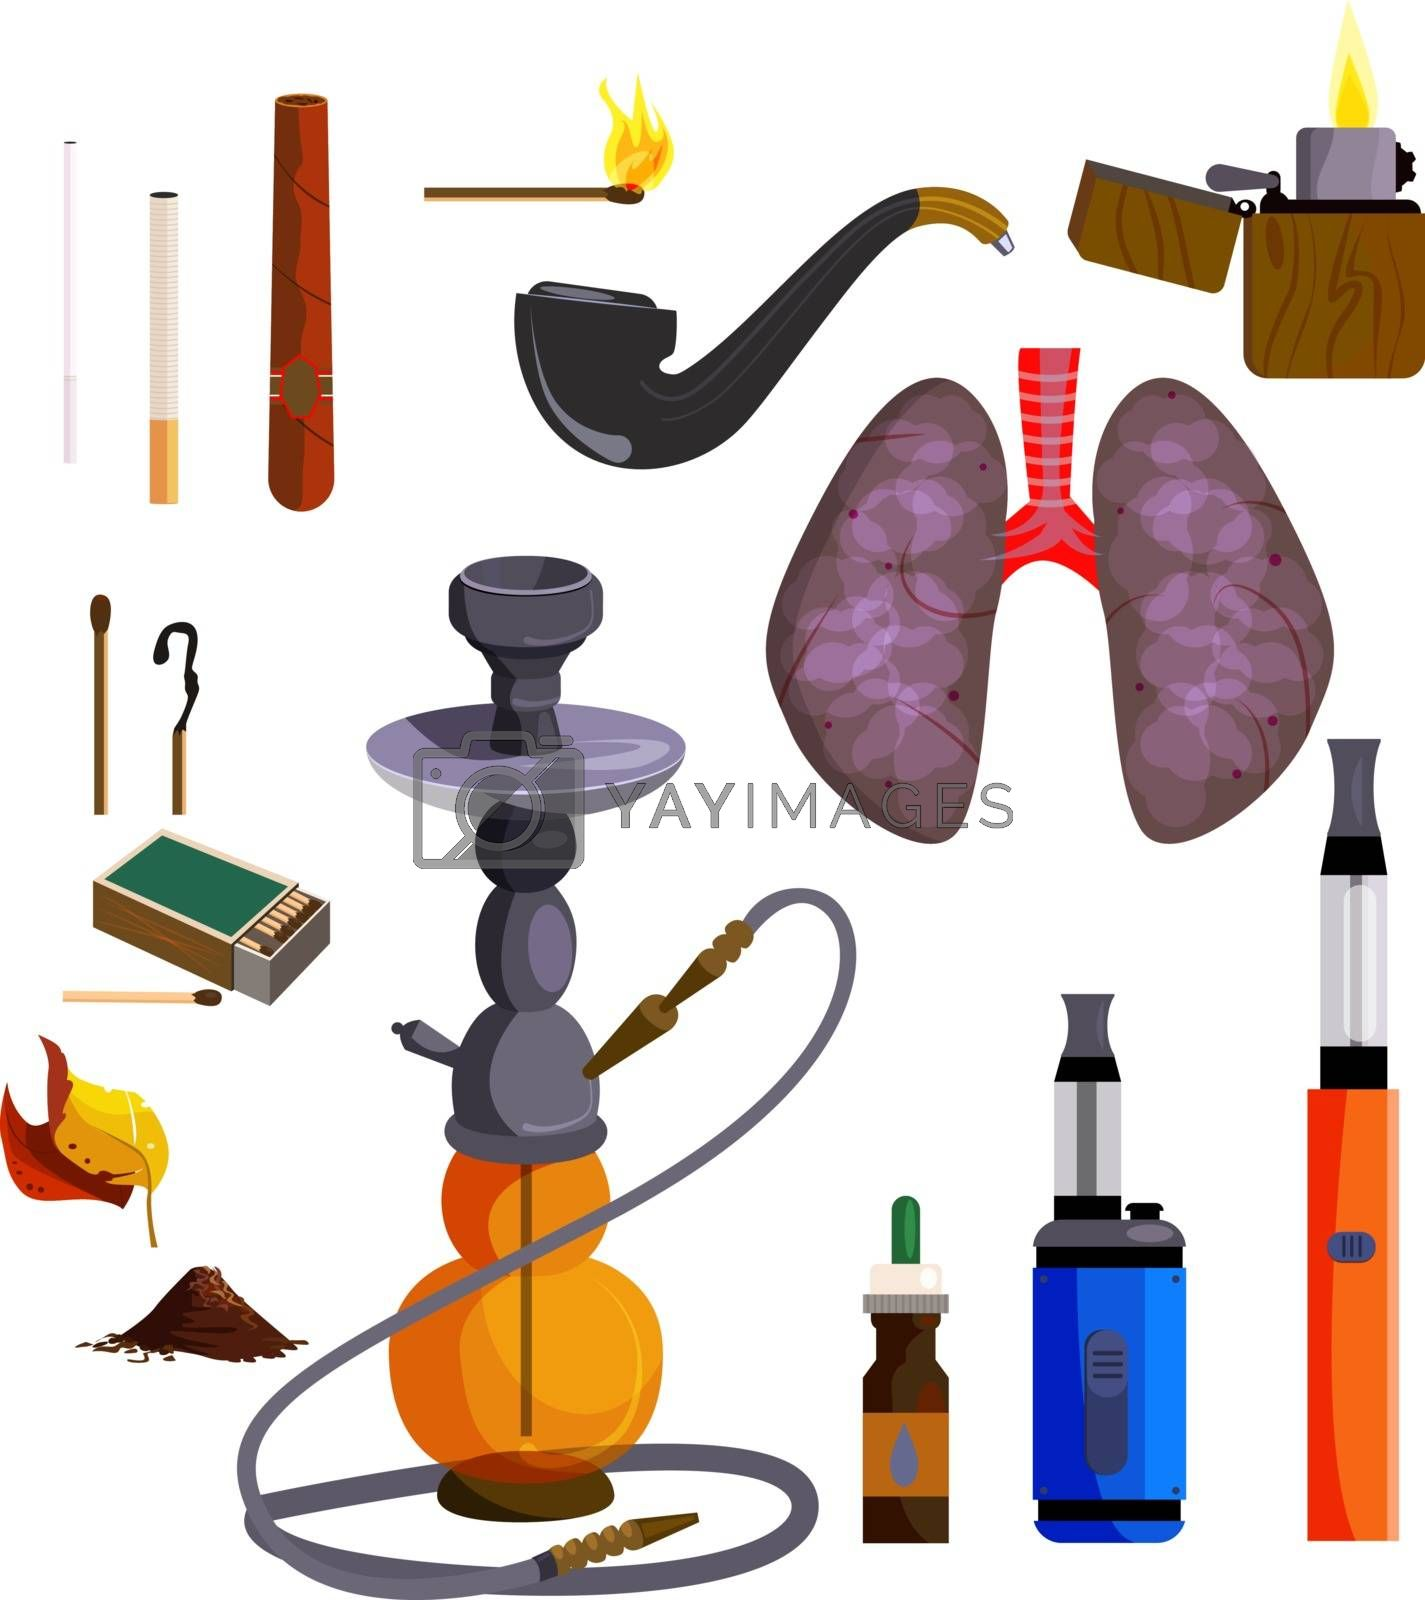 Smoking devices icons set. Vector icons collection on white background, Hookah, lungs, cigar, cigarette. Smoking concept. Illustration can be used for topics like tobacco shop, unhealthy lifestyle